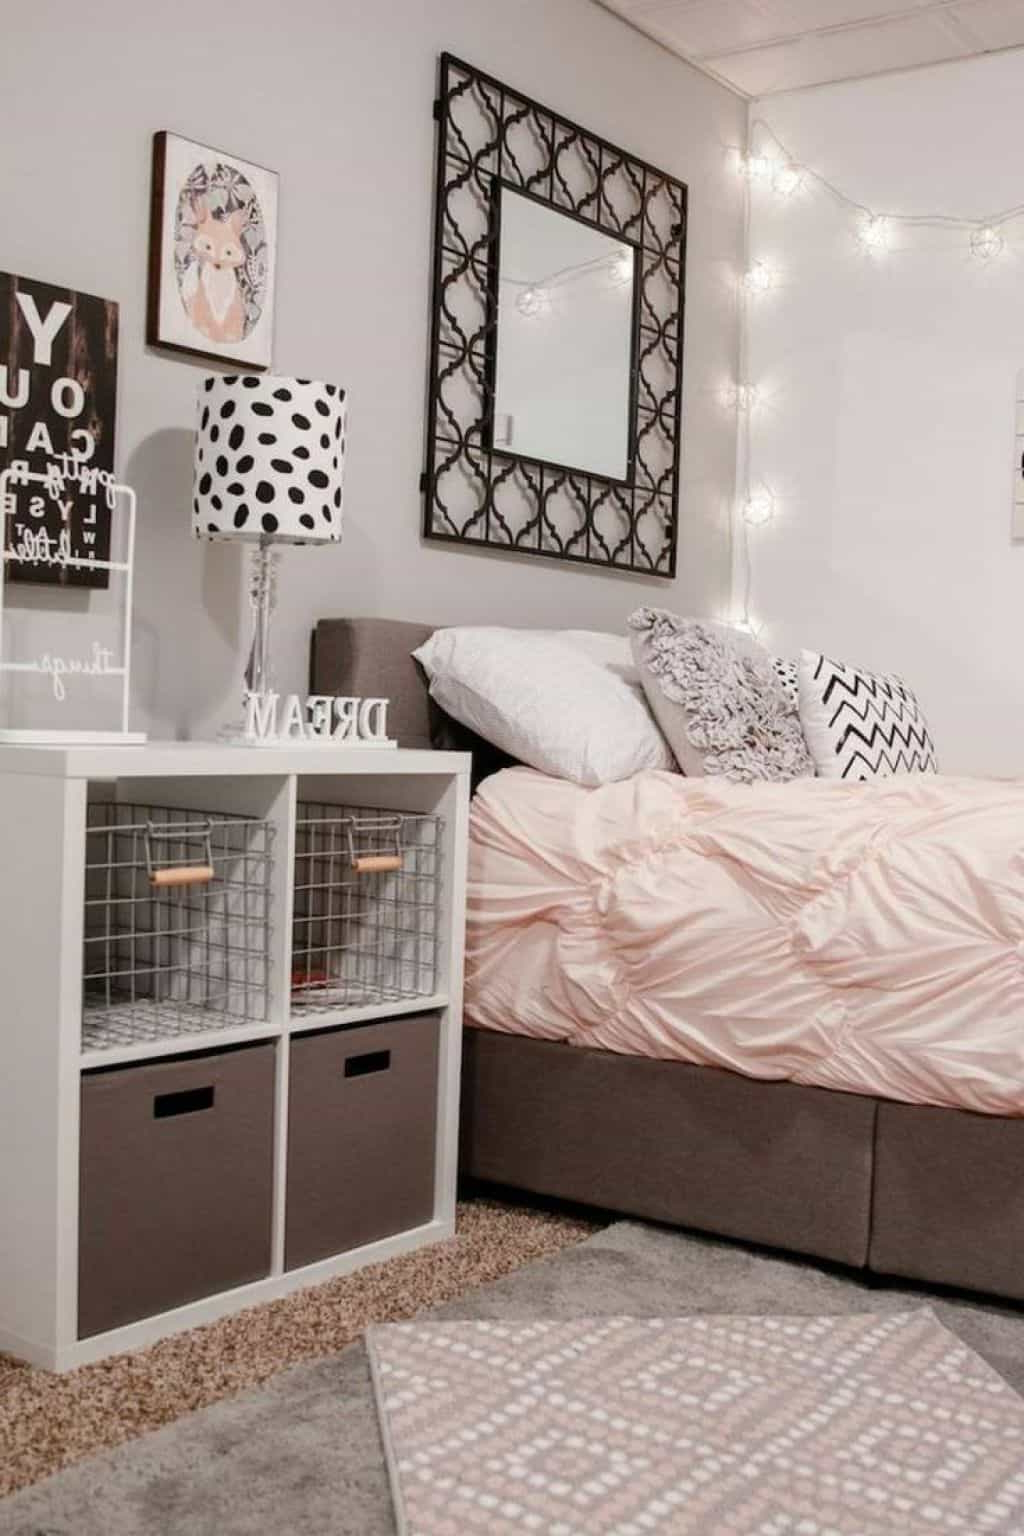 Newest Bedroom Wall Mirrors Intended For Small Bedroom With Wall Mirror And Baskets – Ideas To Organize Your (Gallery 8 of 20)